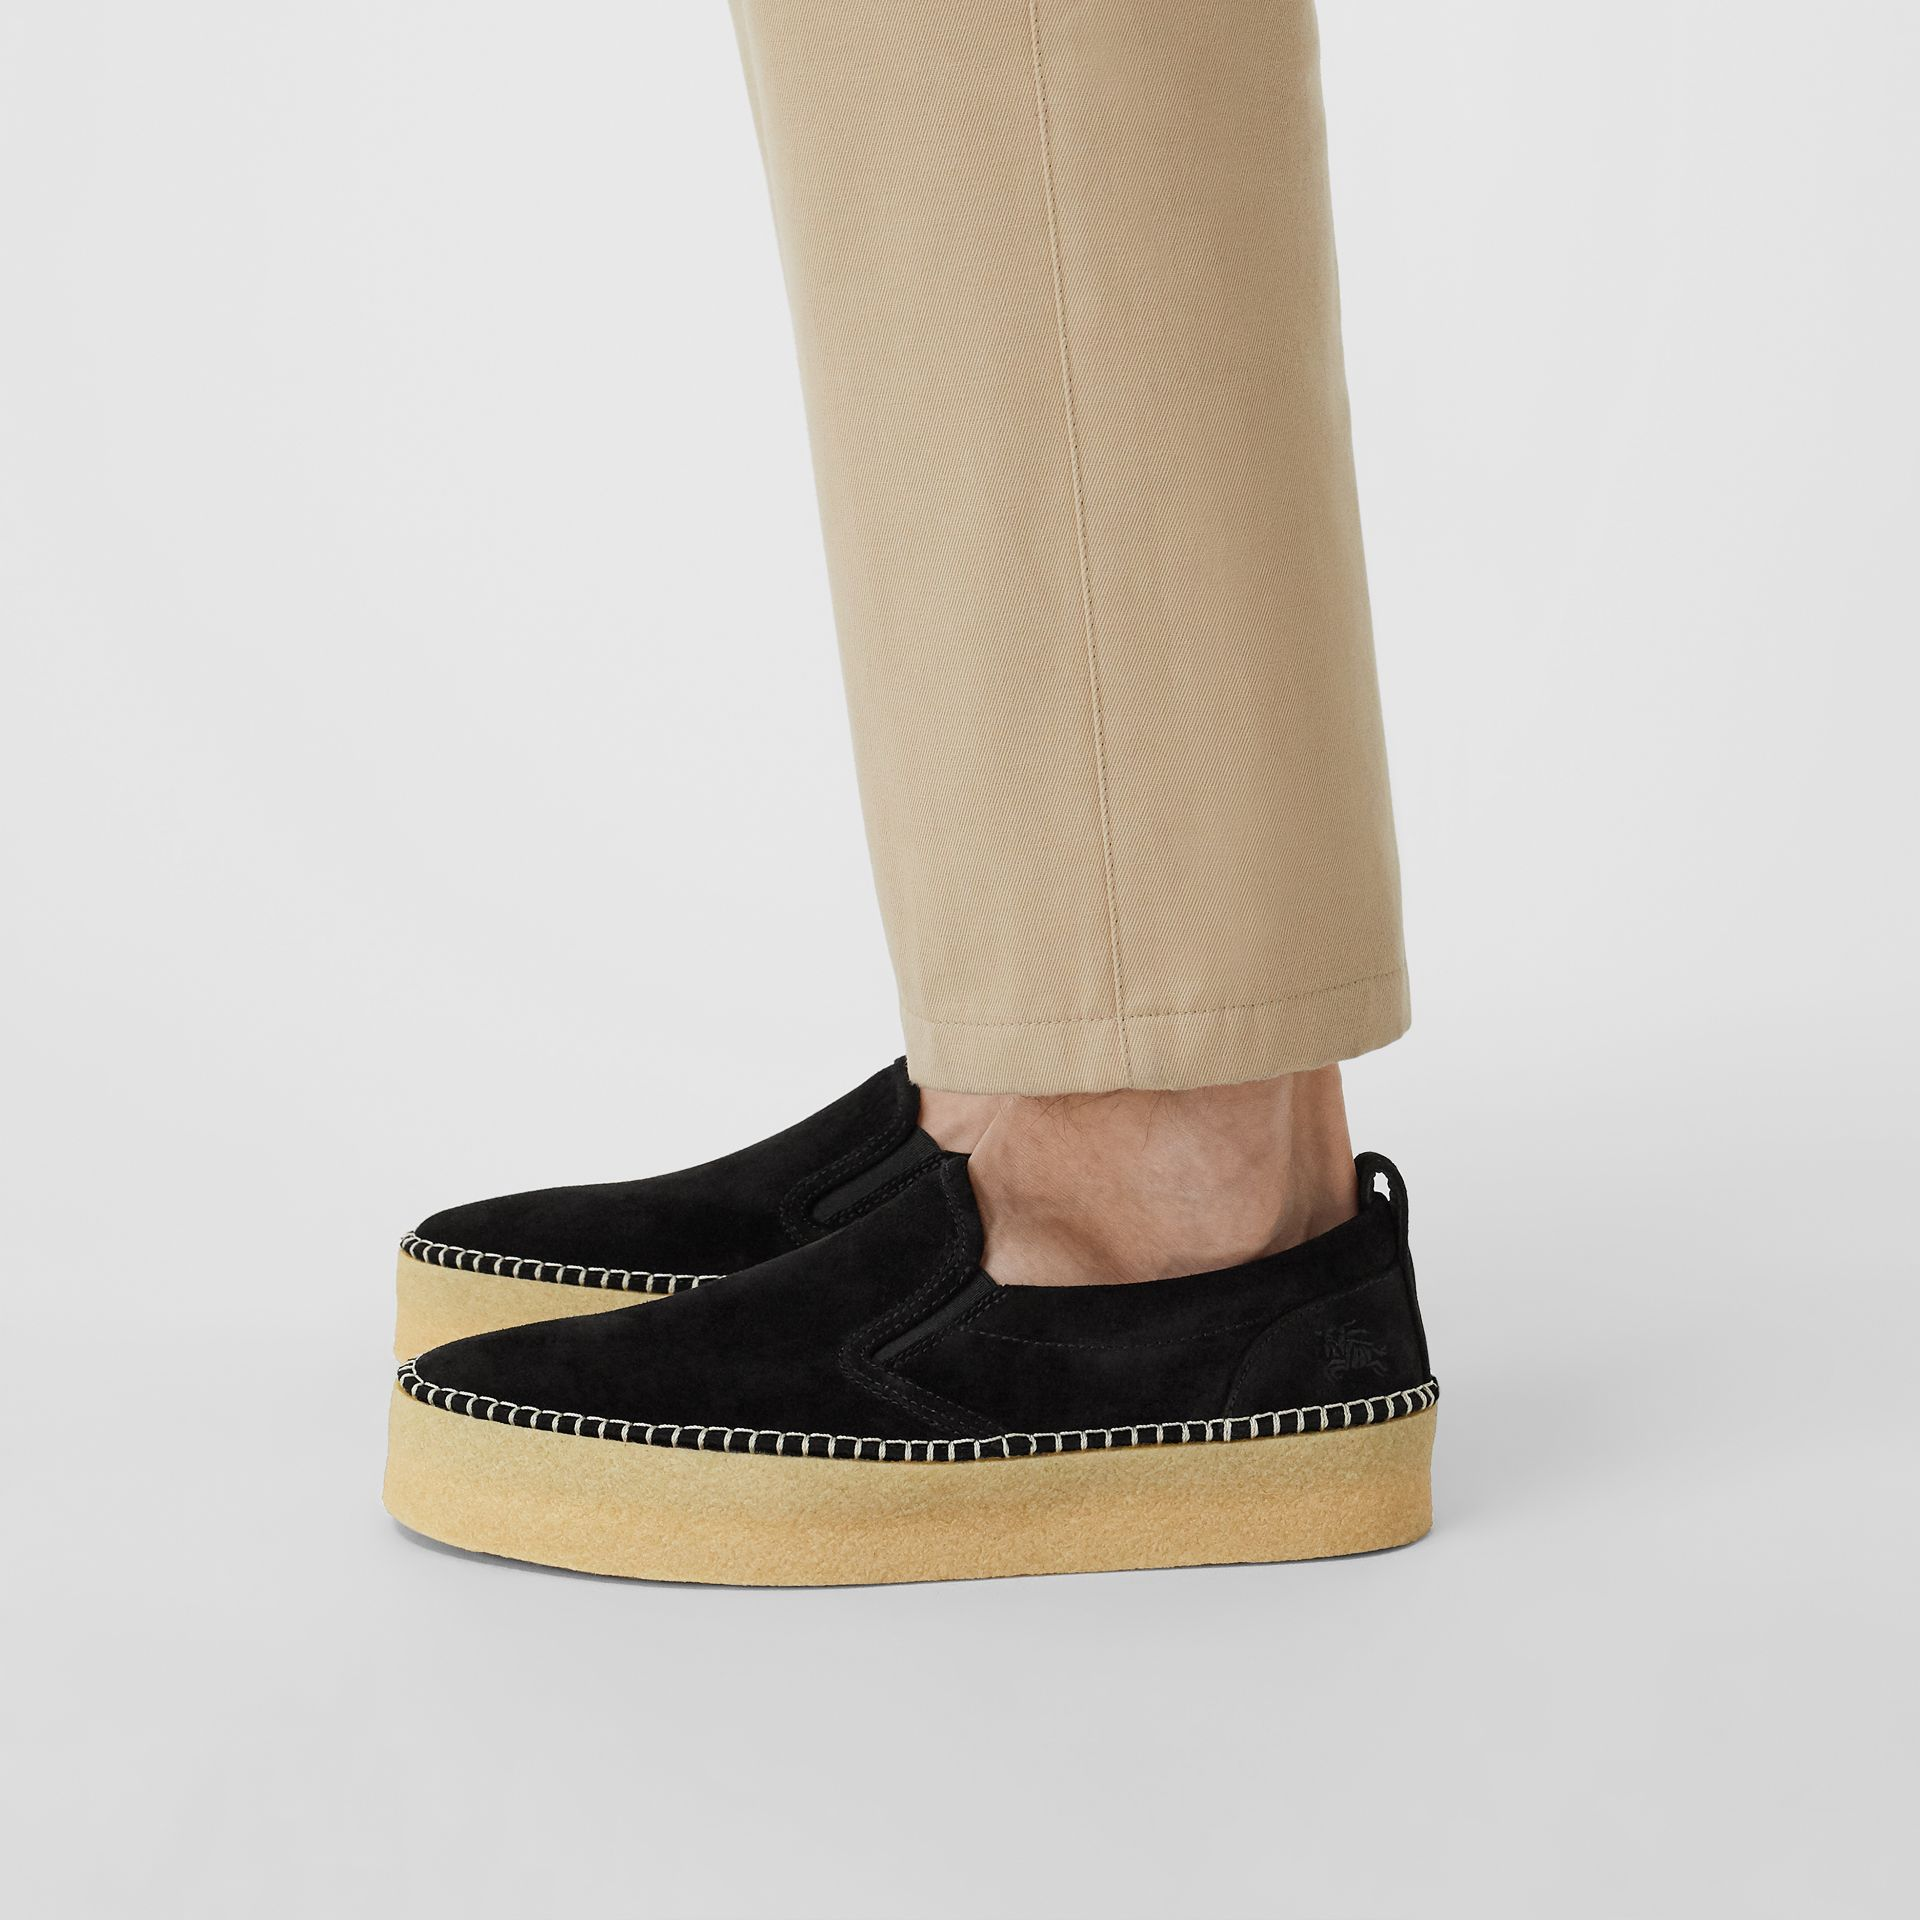 Suede Slip-on Sneakers in Black - Men | Burberry Hong Kong - gallery image 2